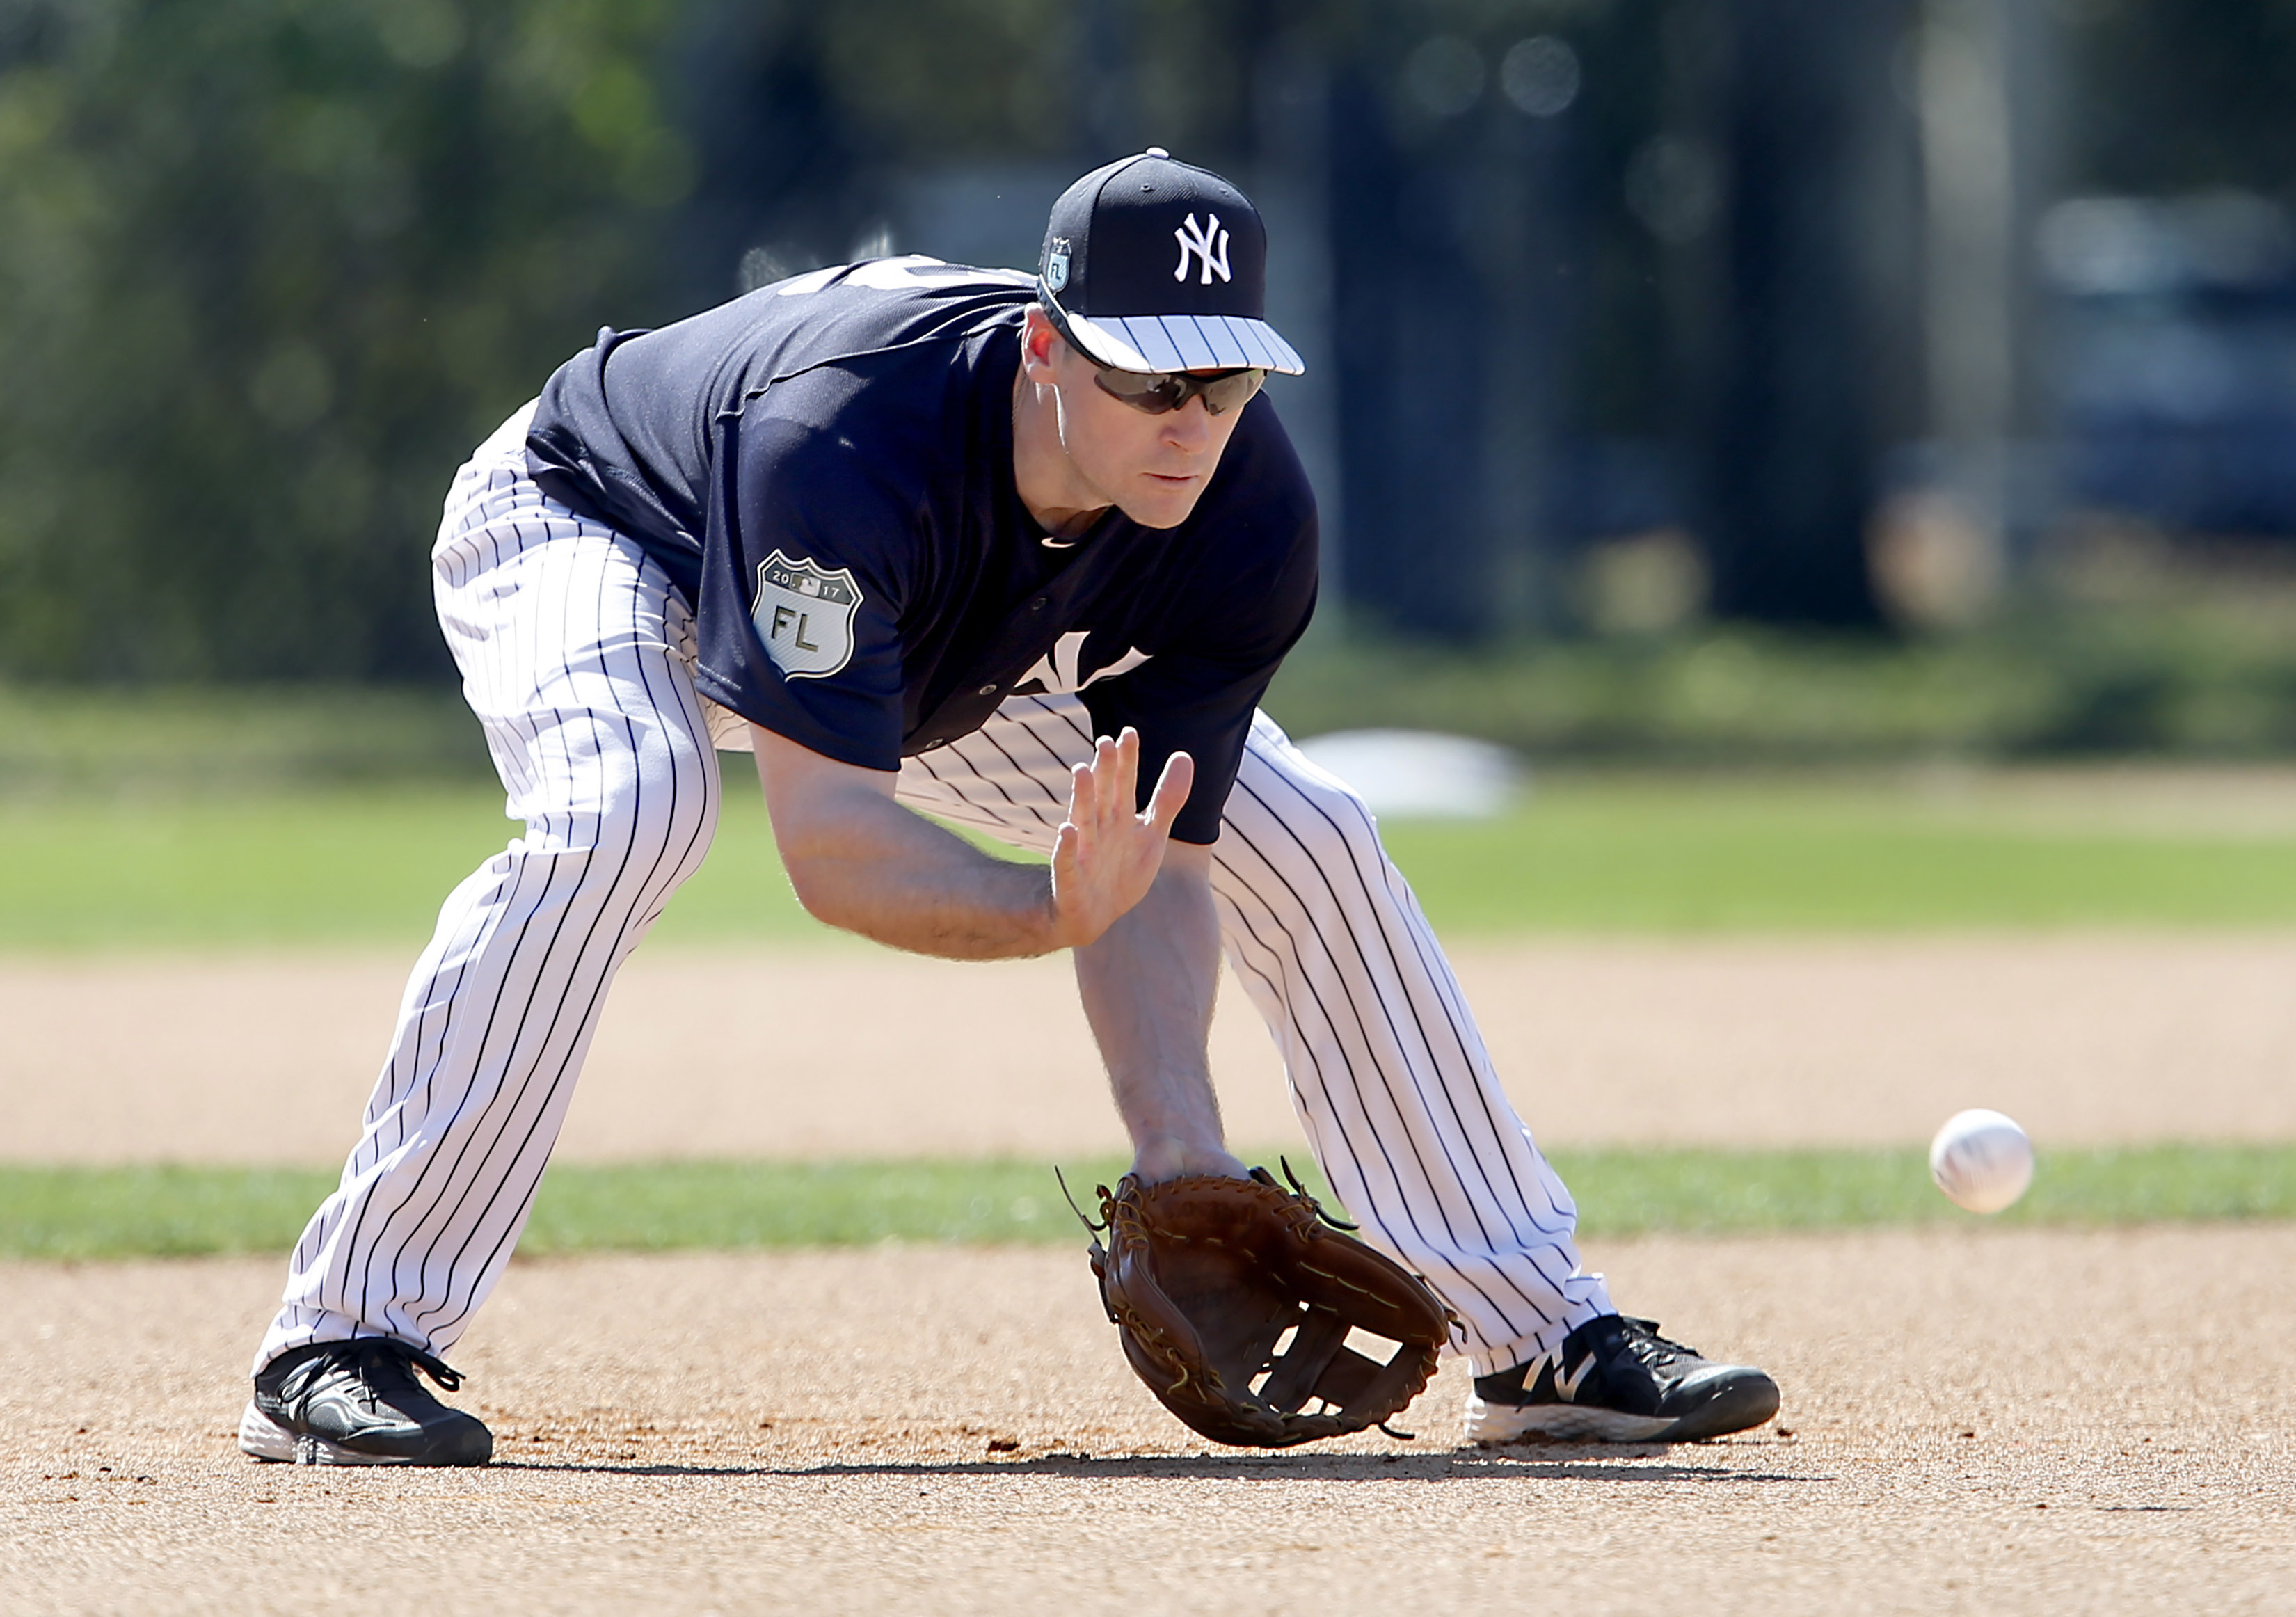 9889808-mlb-new-york-yankees-workouts